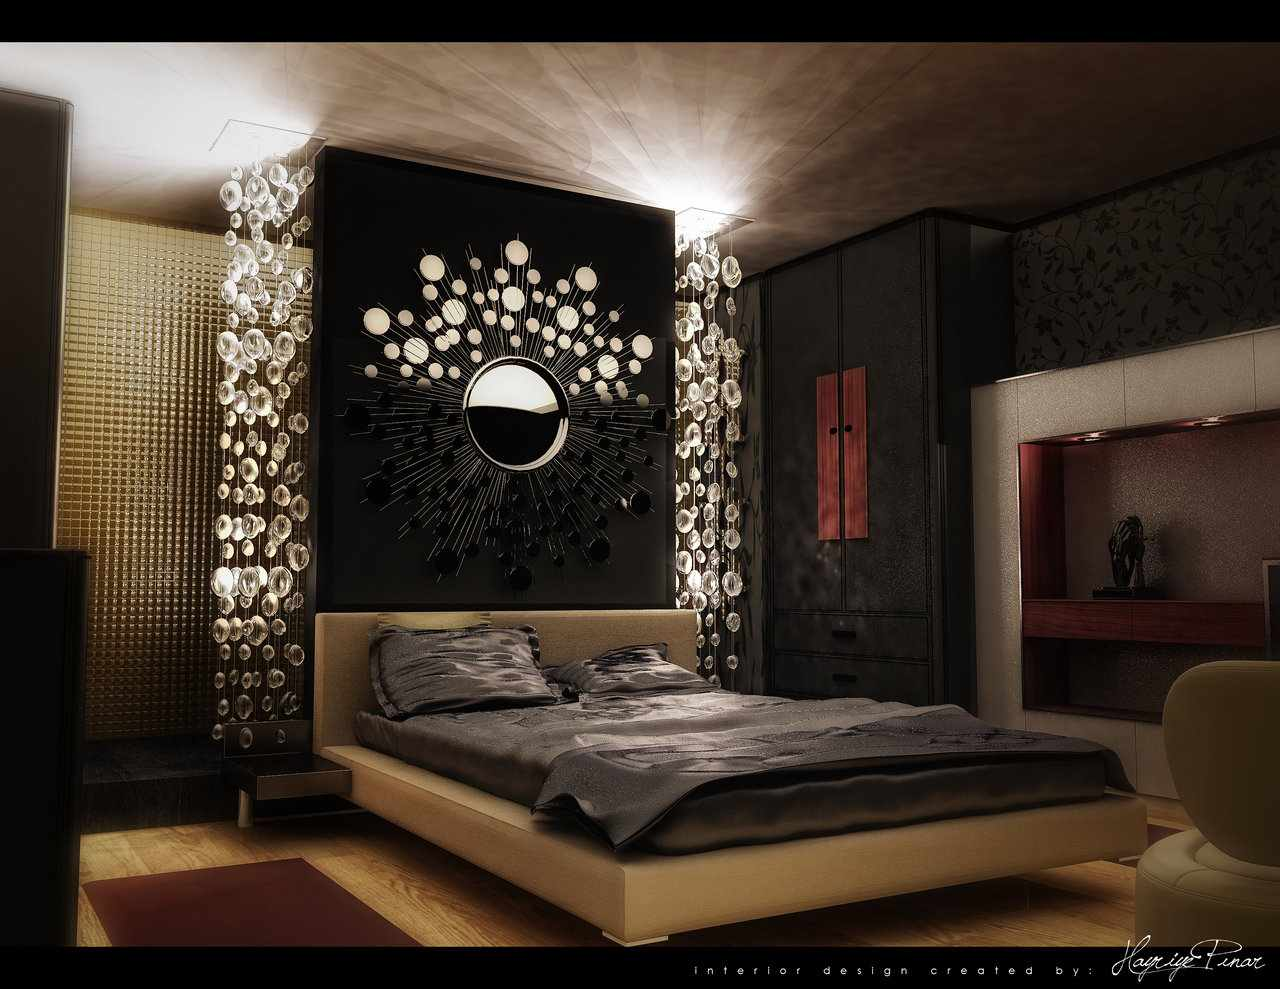 Ikea bedroom ideas ikea bedroom 2014 ideas room design for Bedroom decor pictures